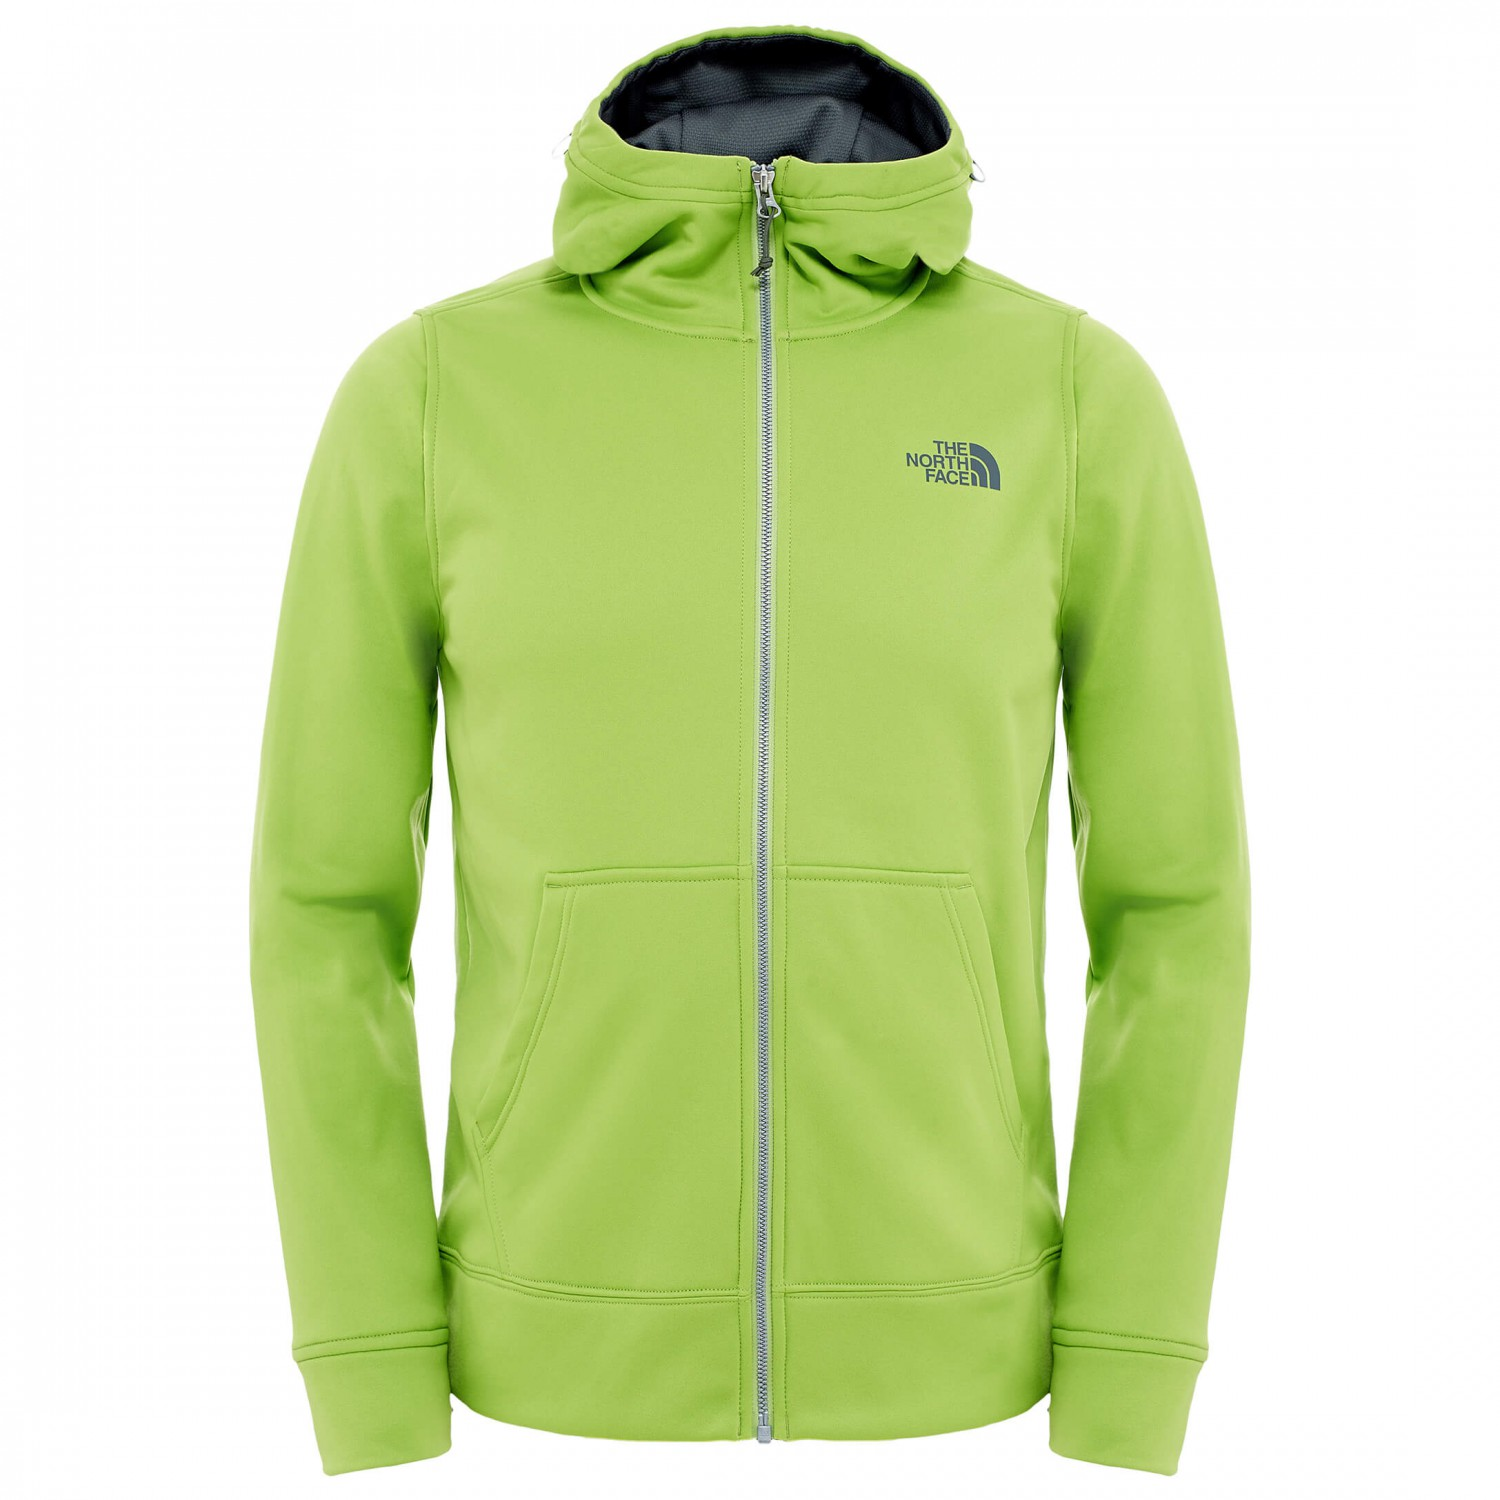 low priced 94c88 5ae63 free shipping the north face thermoball triclimate jacket ...